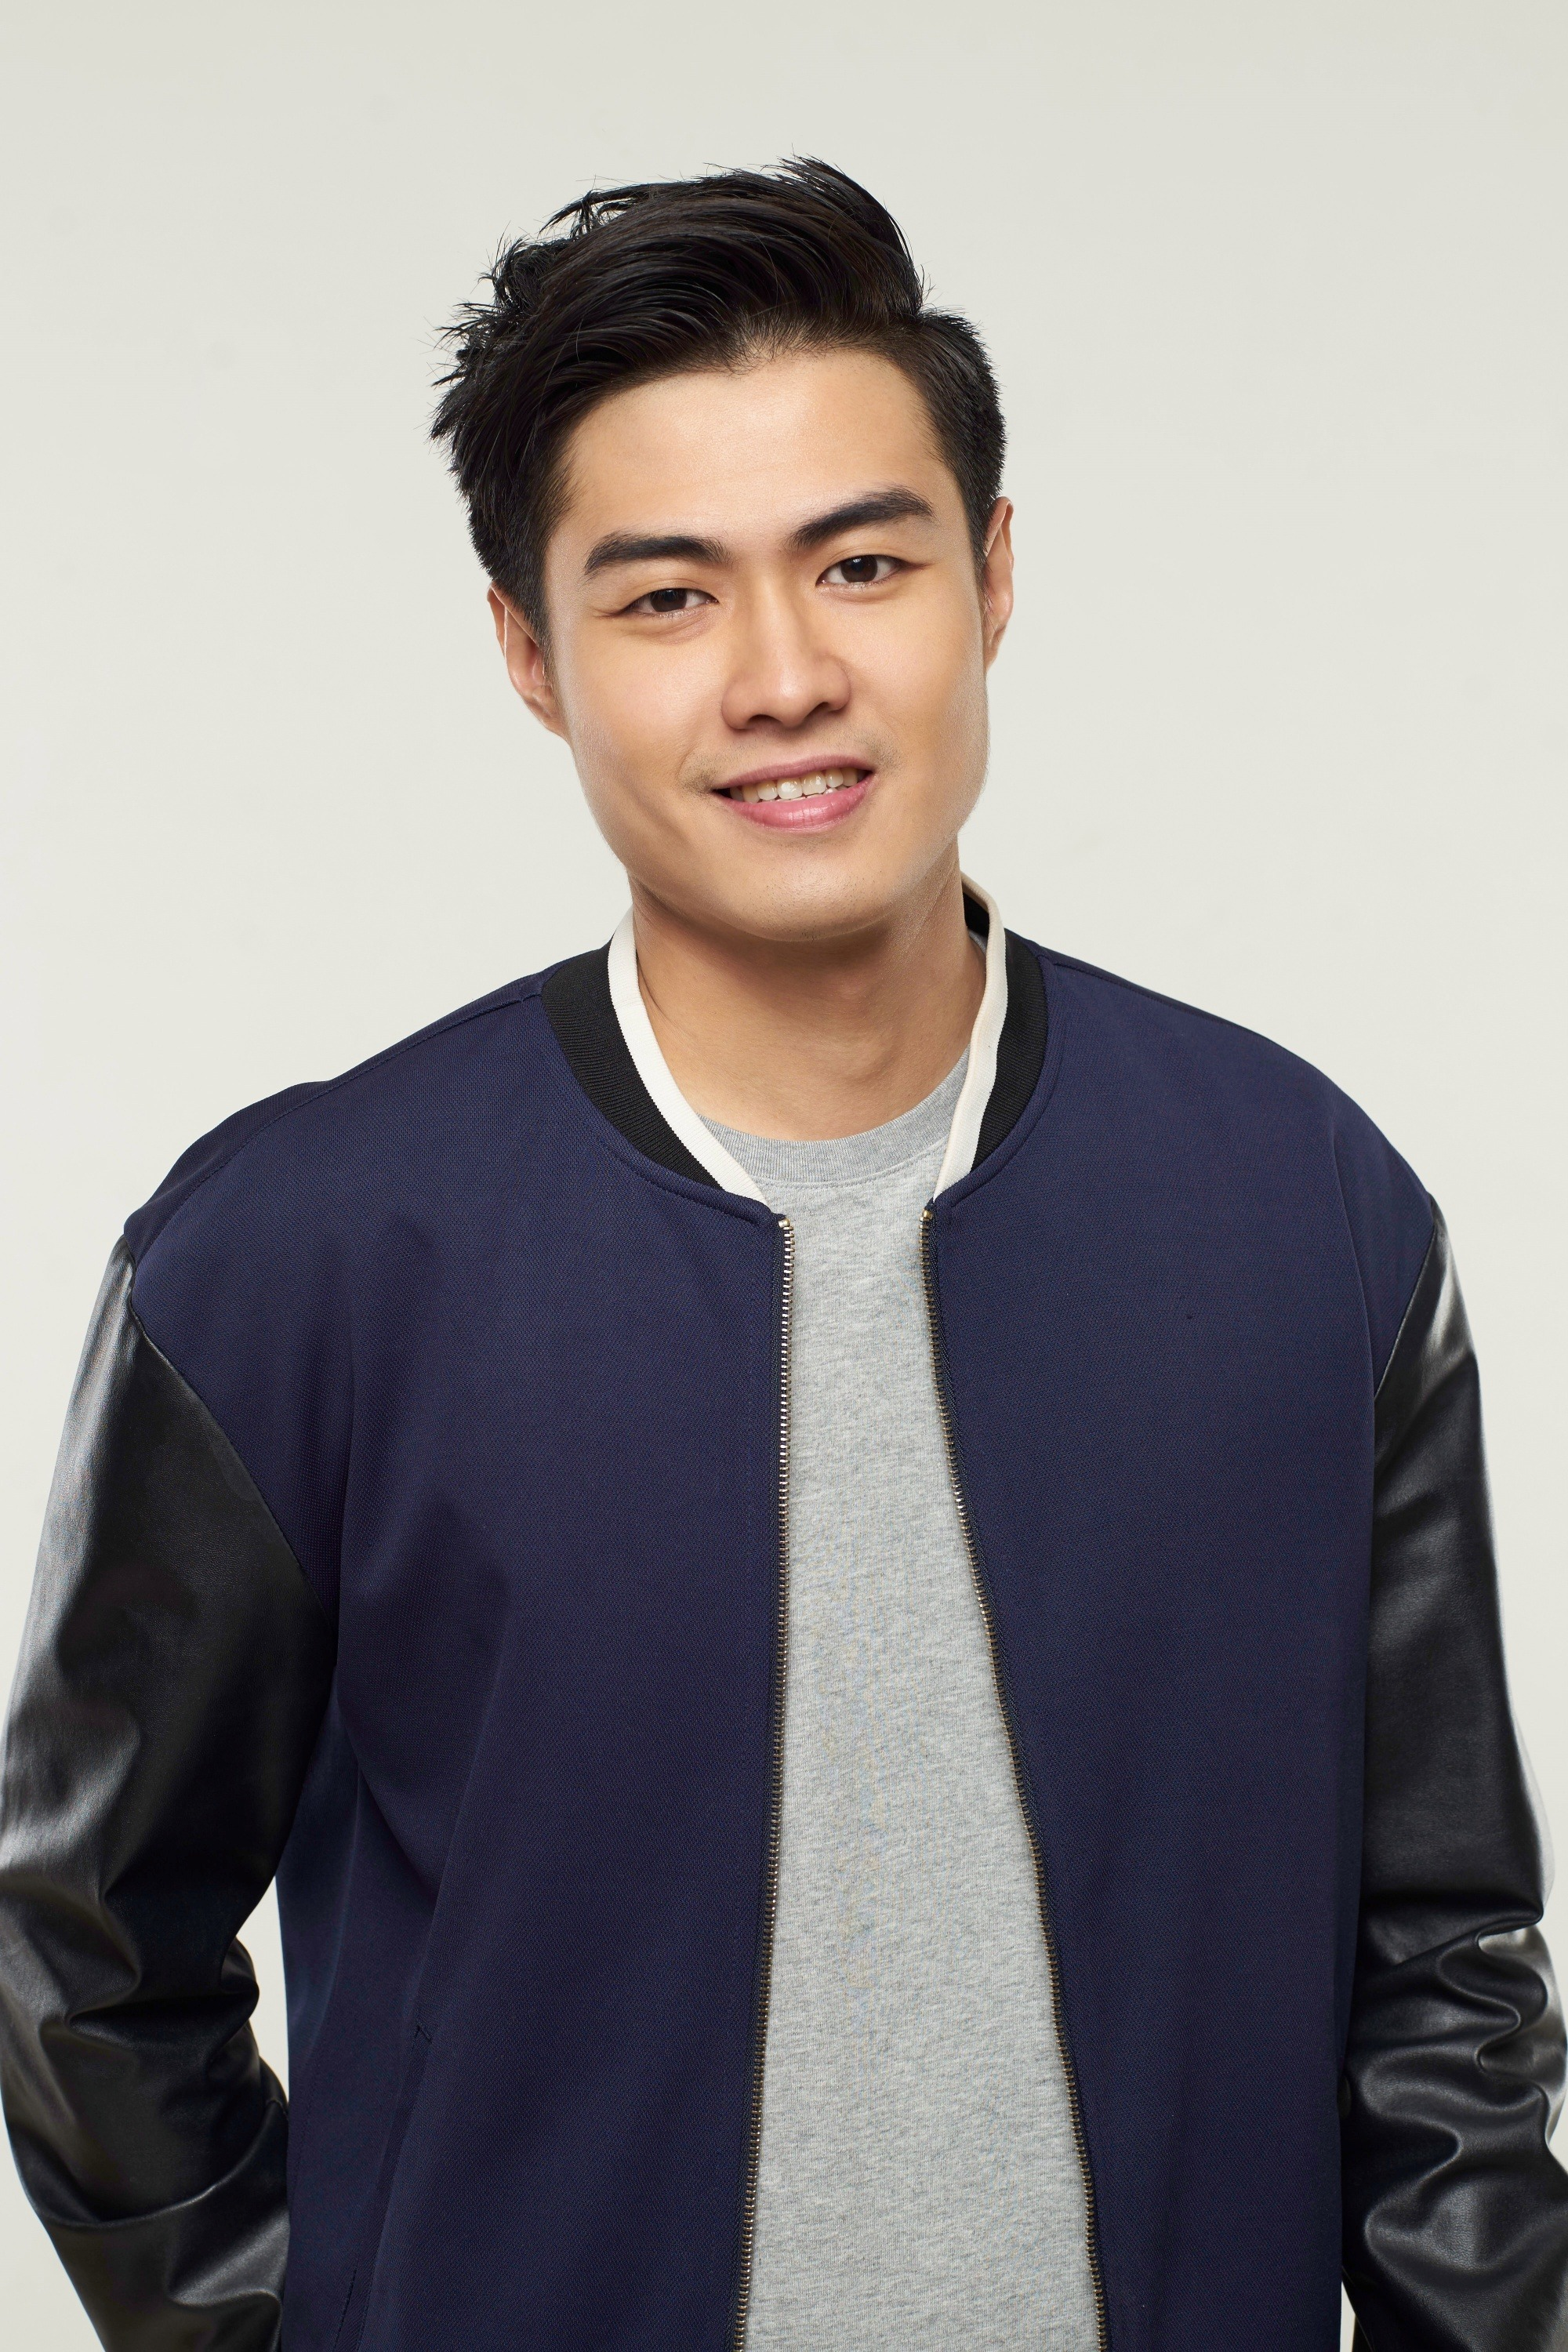 Asian man with side part haircut smiing and wearing a blue jacket